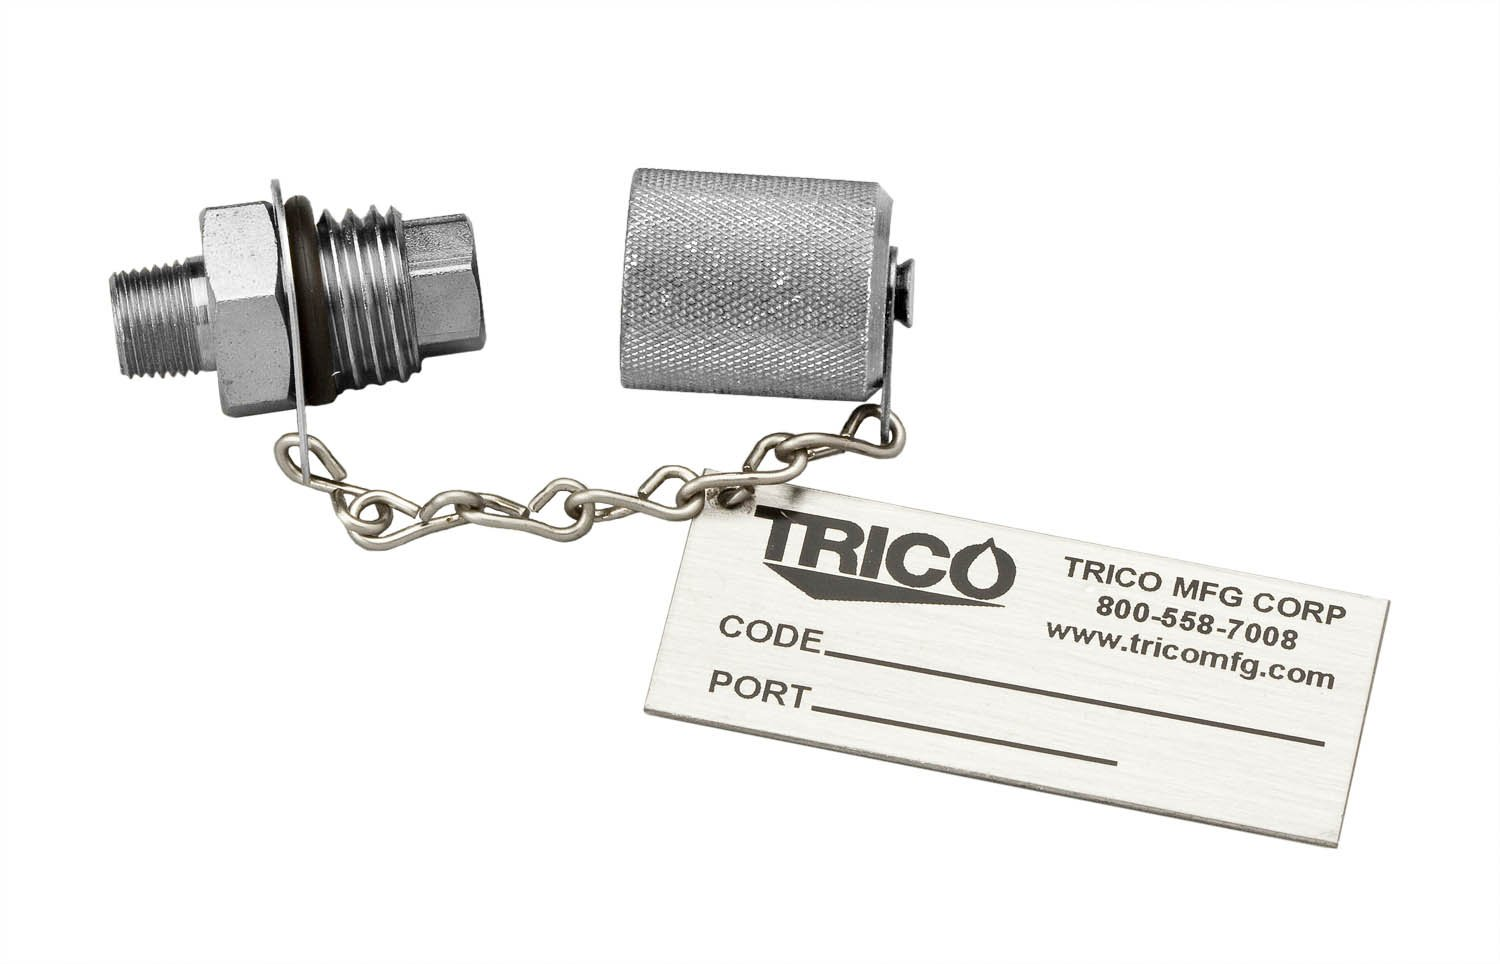 Trico Stainless Steel Oil Sampling Port, 1/4'' NPT Male x M16 x 2